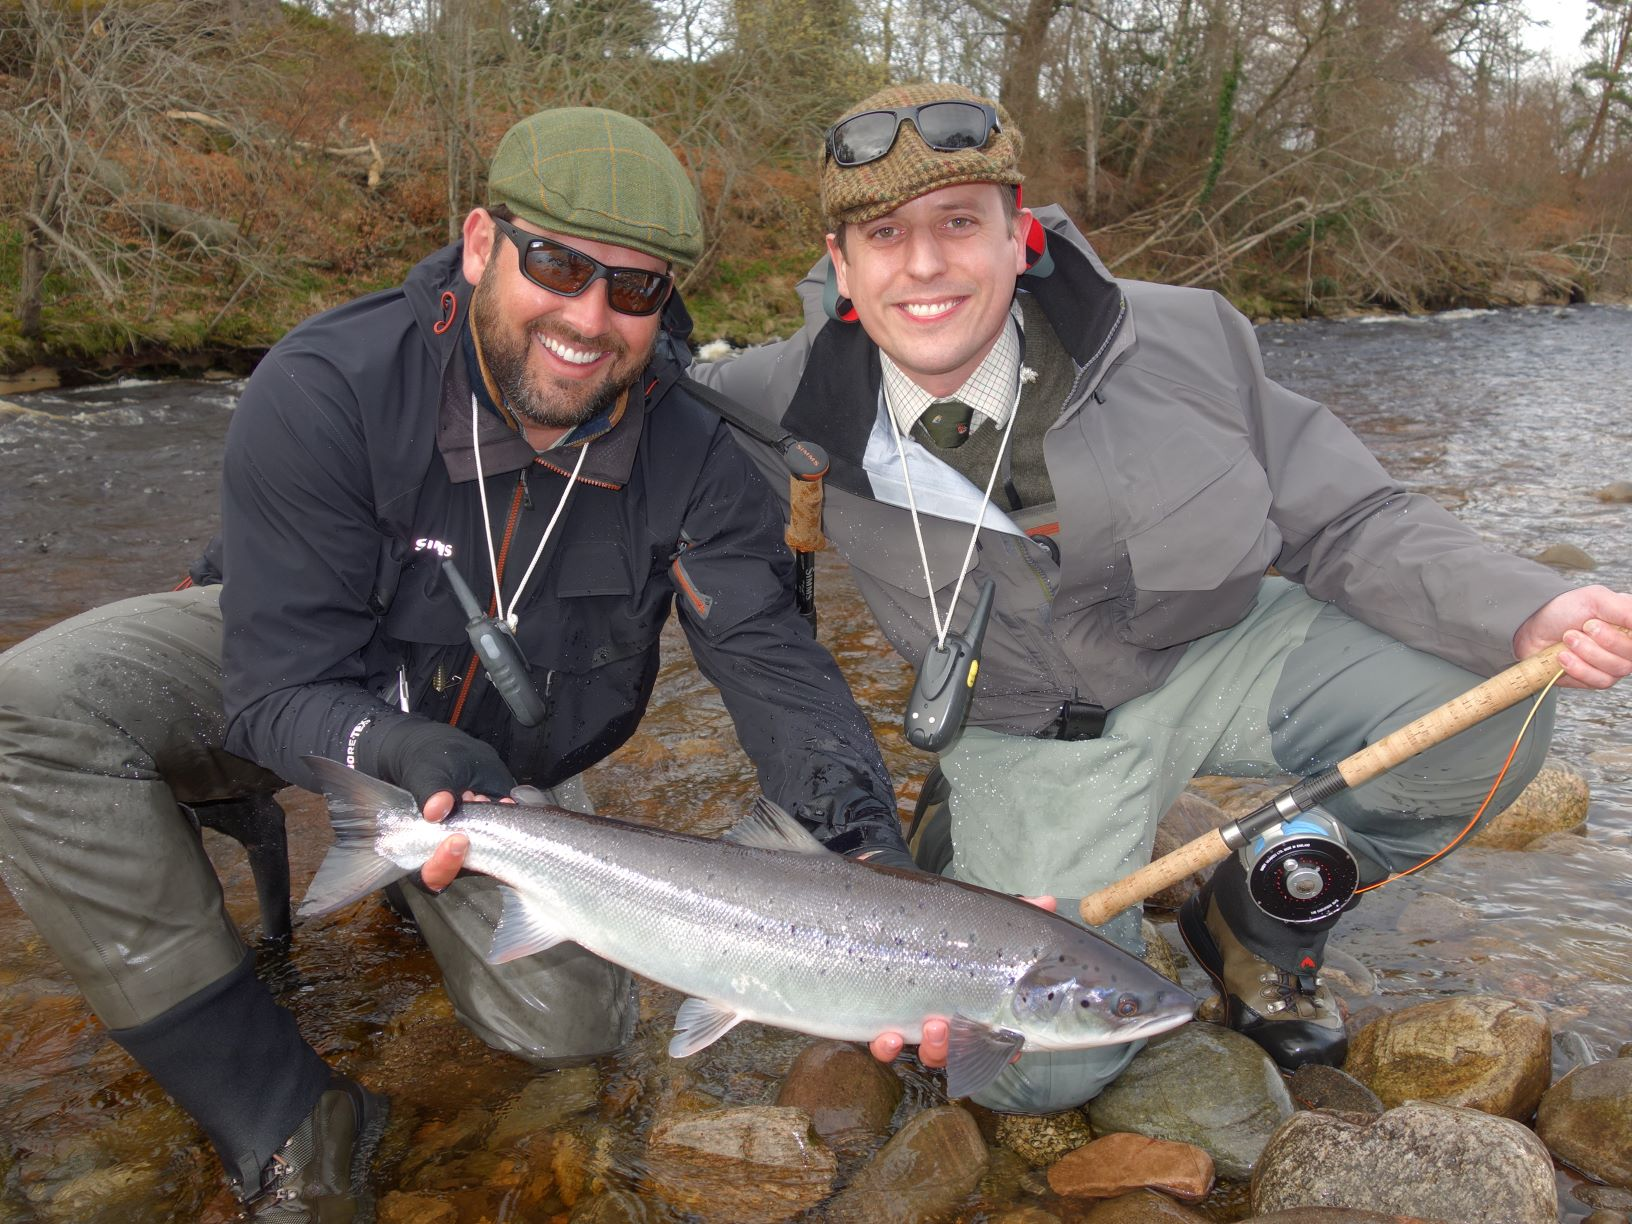 Eugene Burzler & Guy Hemur, with his first salmon of the season, of around 8 lbs. from the Roan Pool, Altyre Estate, River Findhorn